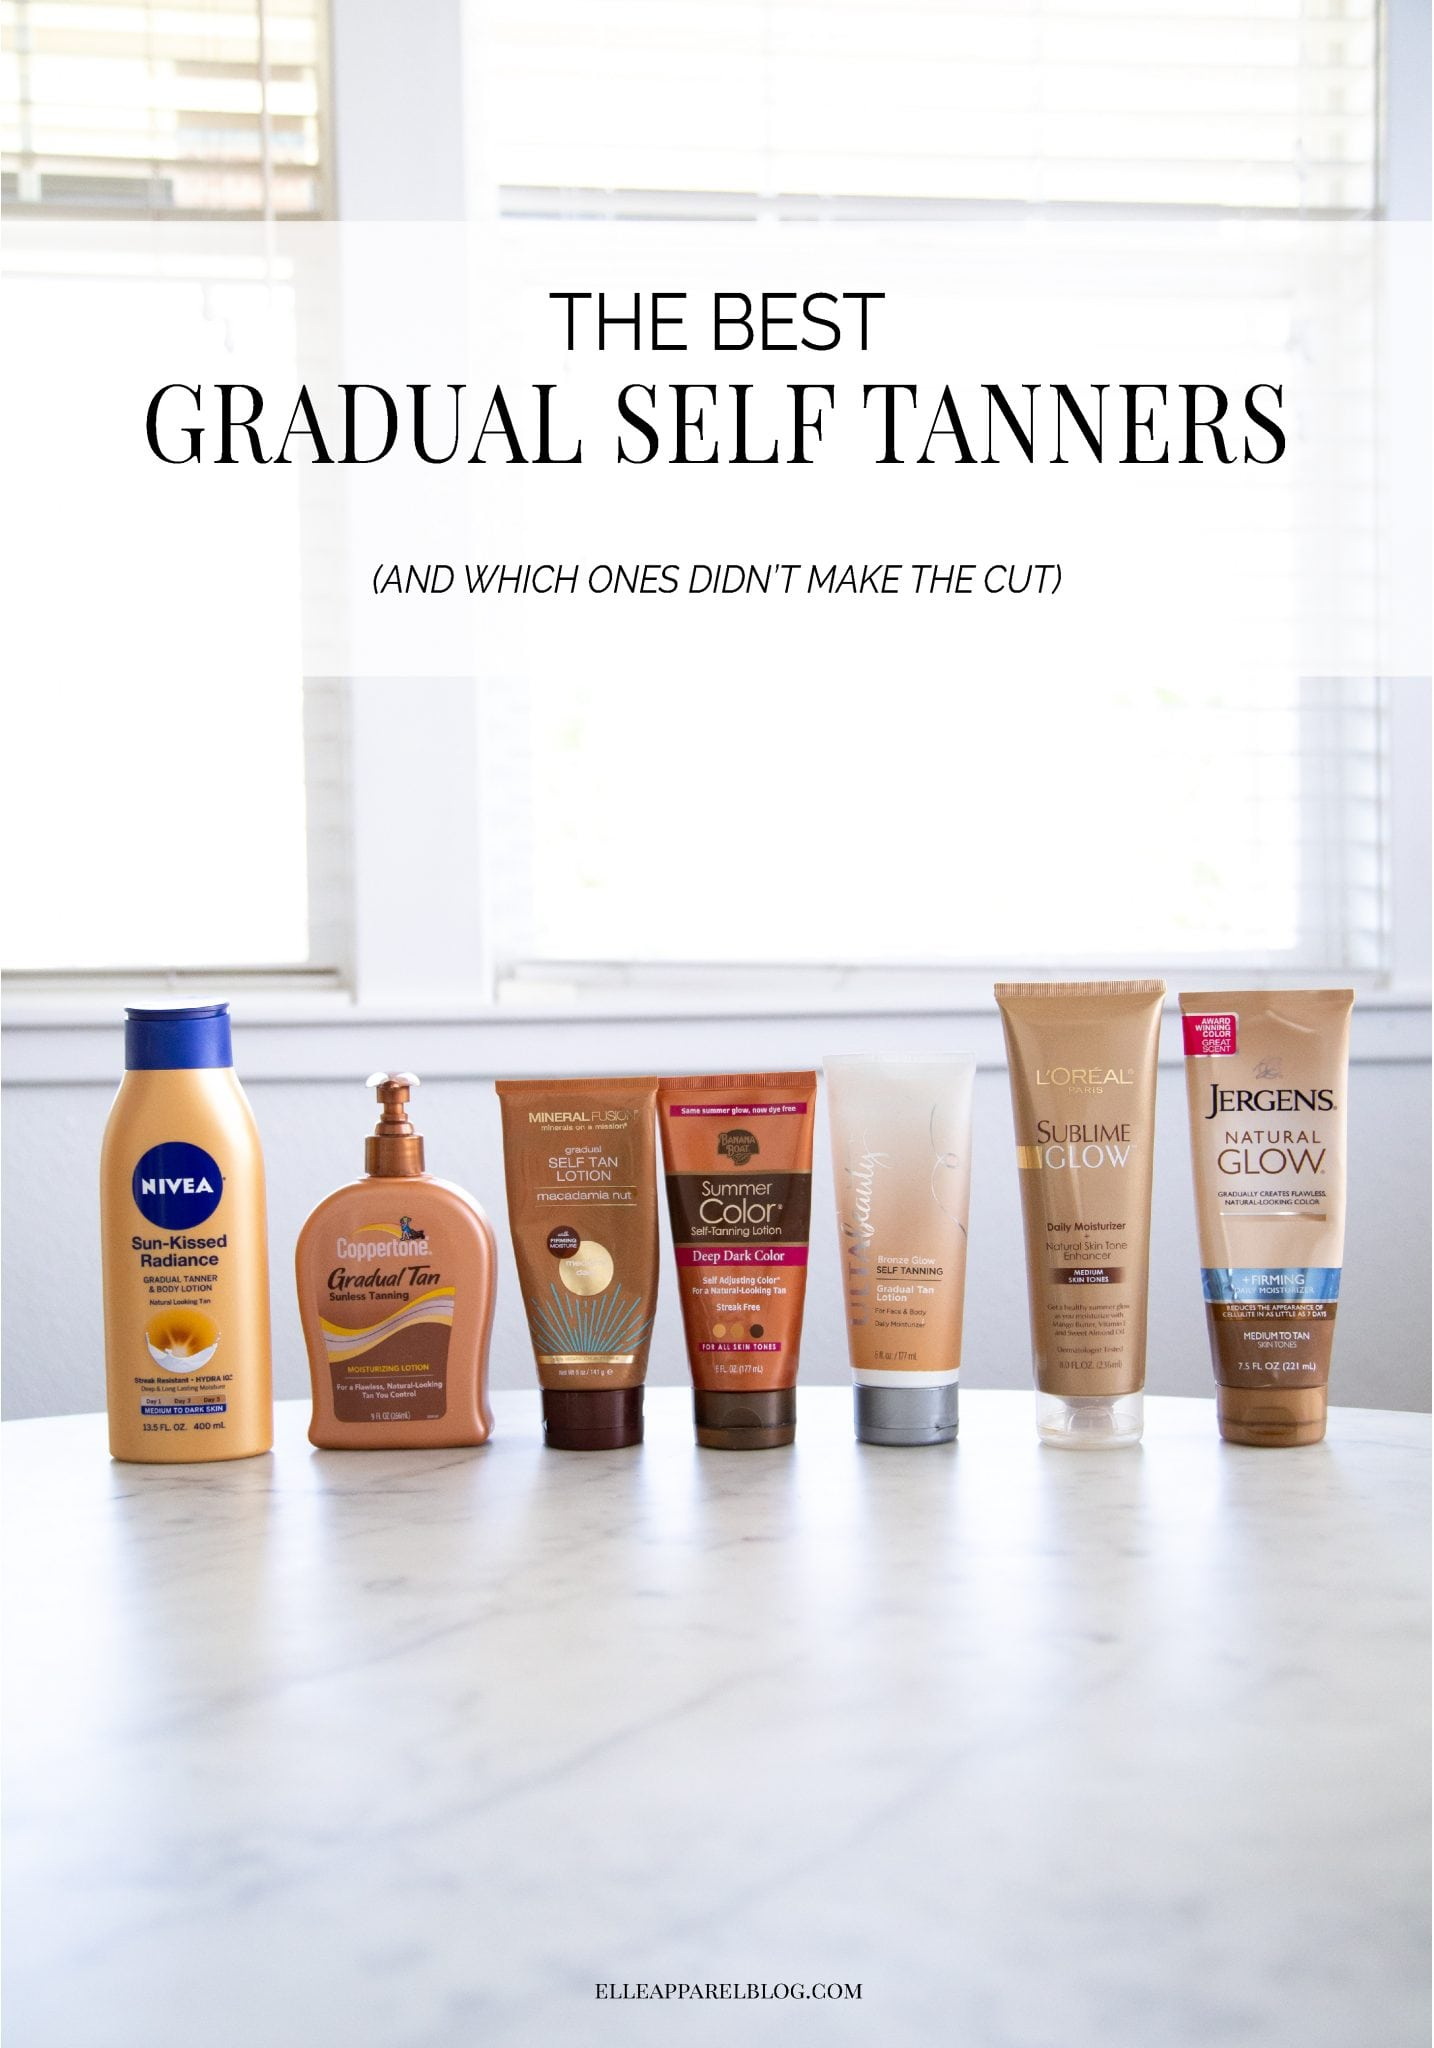 The best gradual self tanners (and the ones to avoid!)